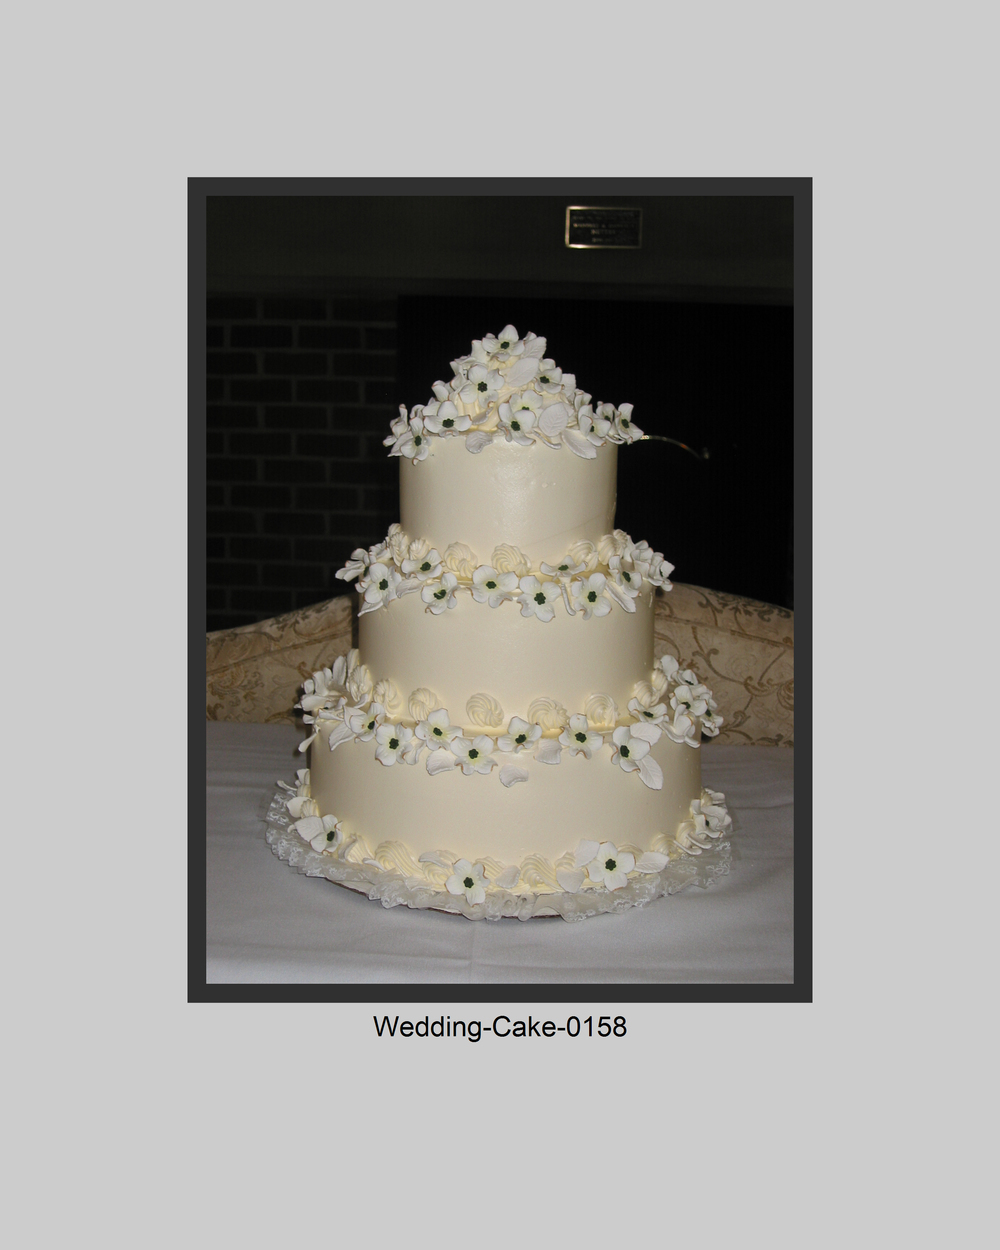 Wedding-Cake-Prints-0158.jpg